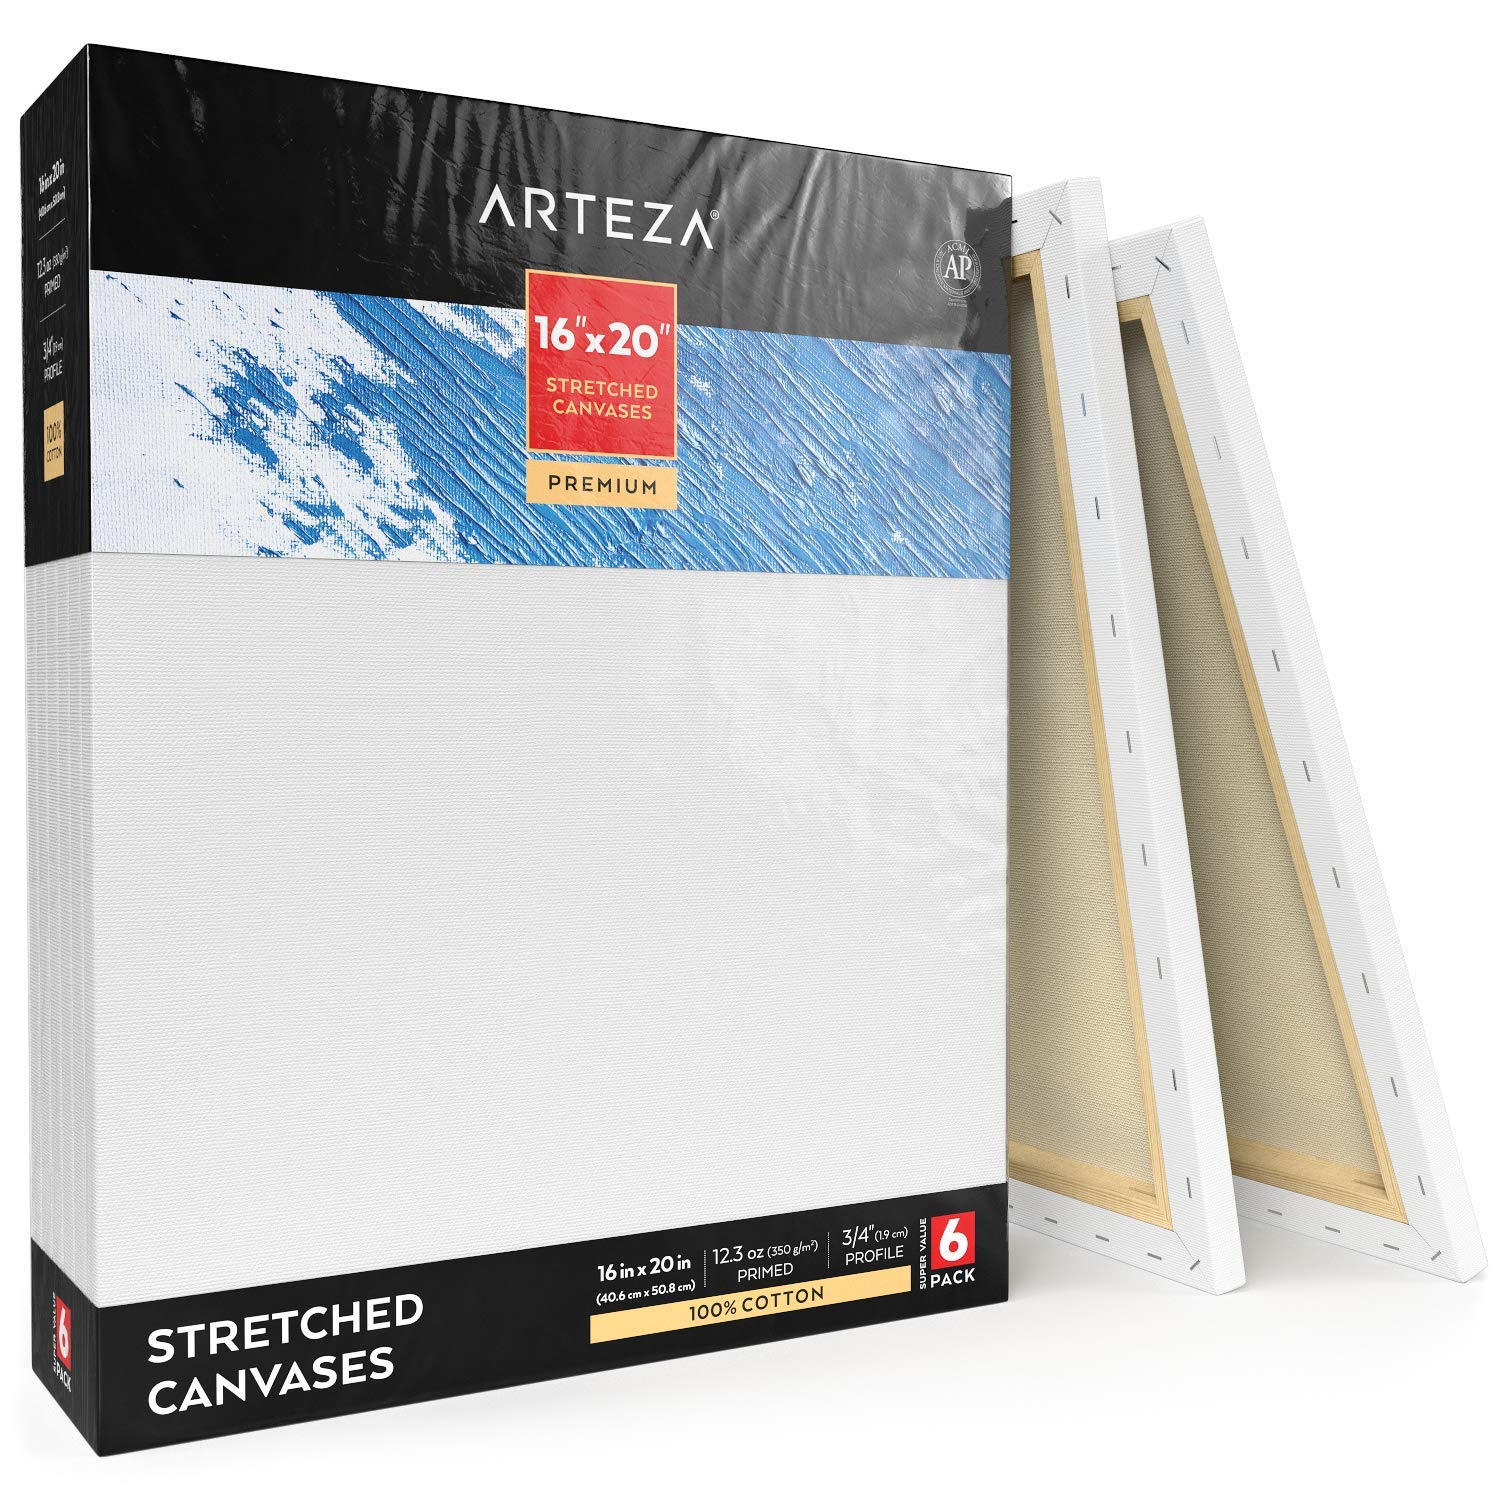 Arteza 16x20'' Professional Stretched White Blank Canvas, Bulk Pack of 6, Primed, 100% Cotton for Painting, Acrylic Pouring, Oil Paint & Wet Art Media, Canvases for Artist, Hobby Painters & Beginner